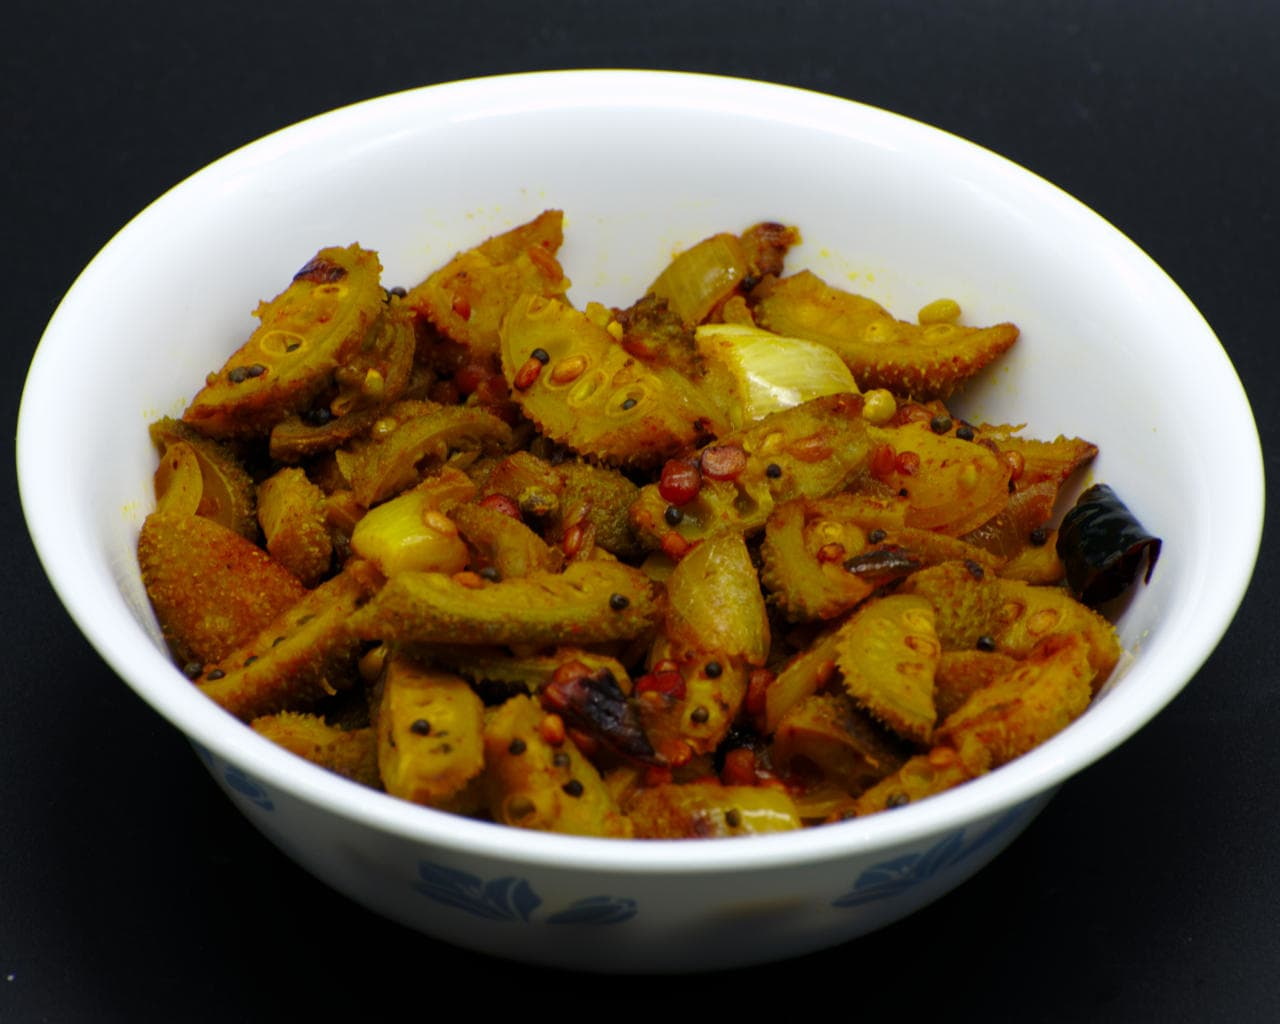 Stir-Fried Kantola With South Indian Spices Image